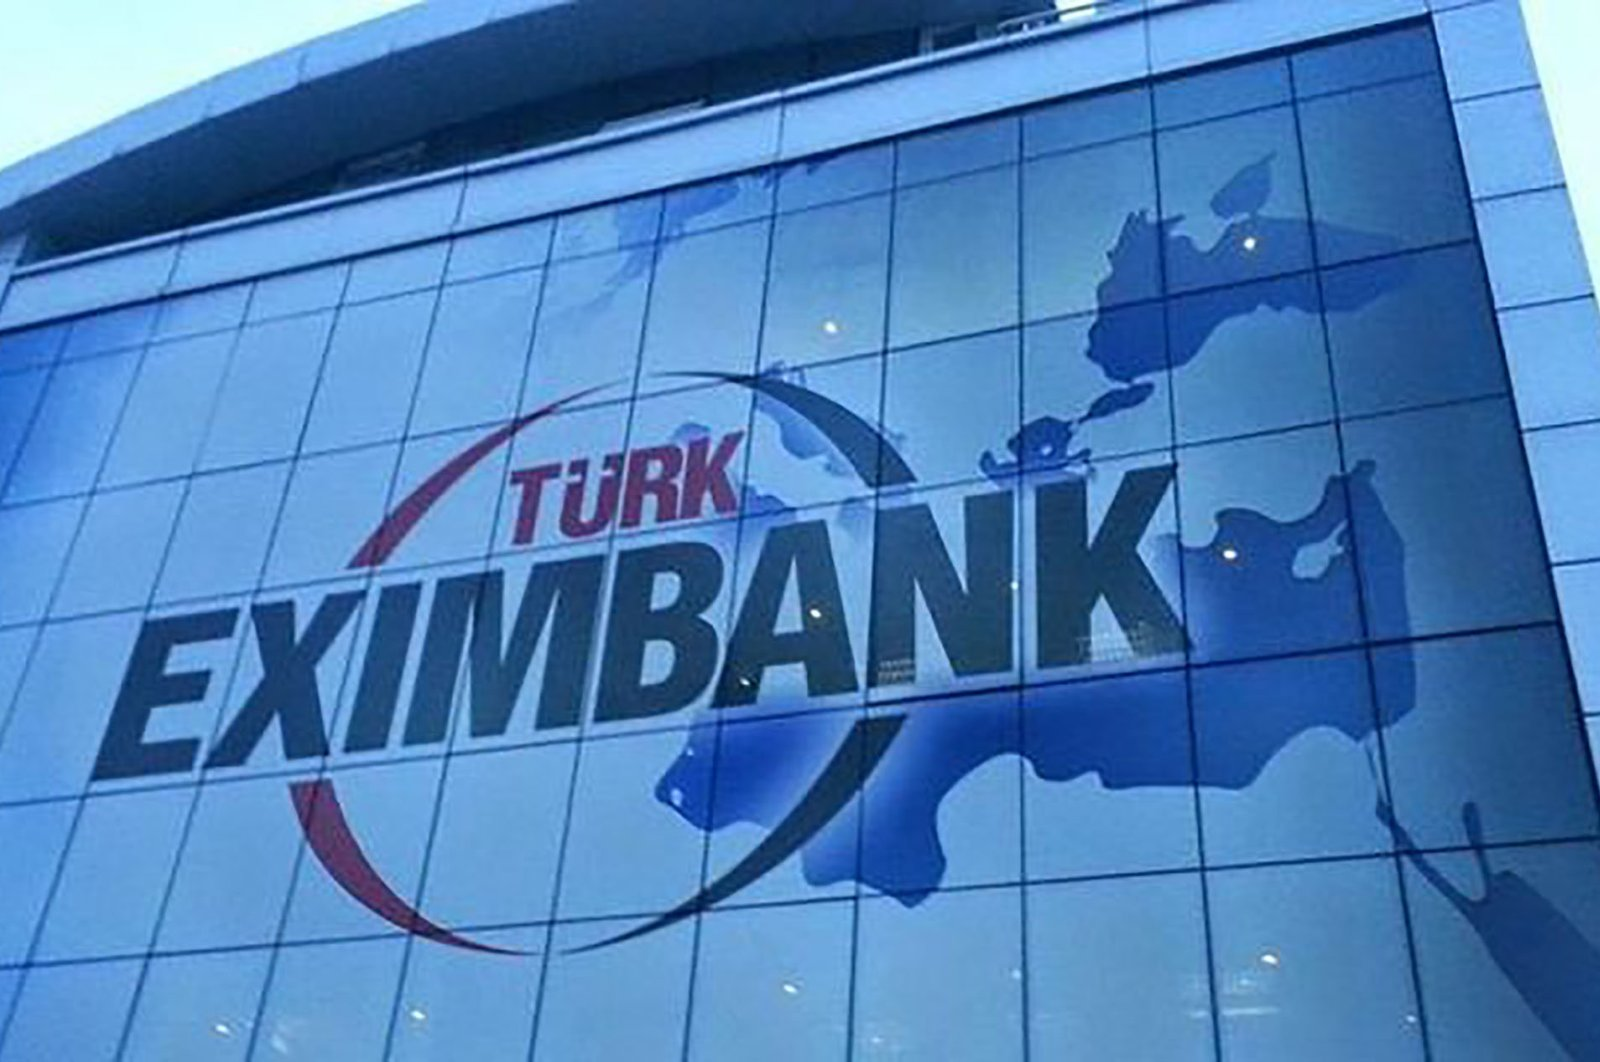 The logo of Türk Eximbank is seen on a building in this undated photo. (File Photo)